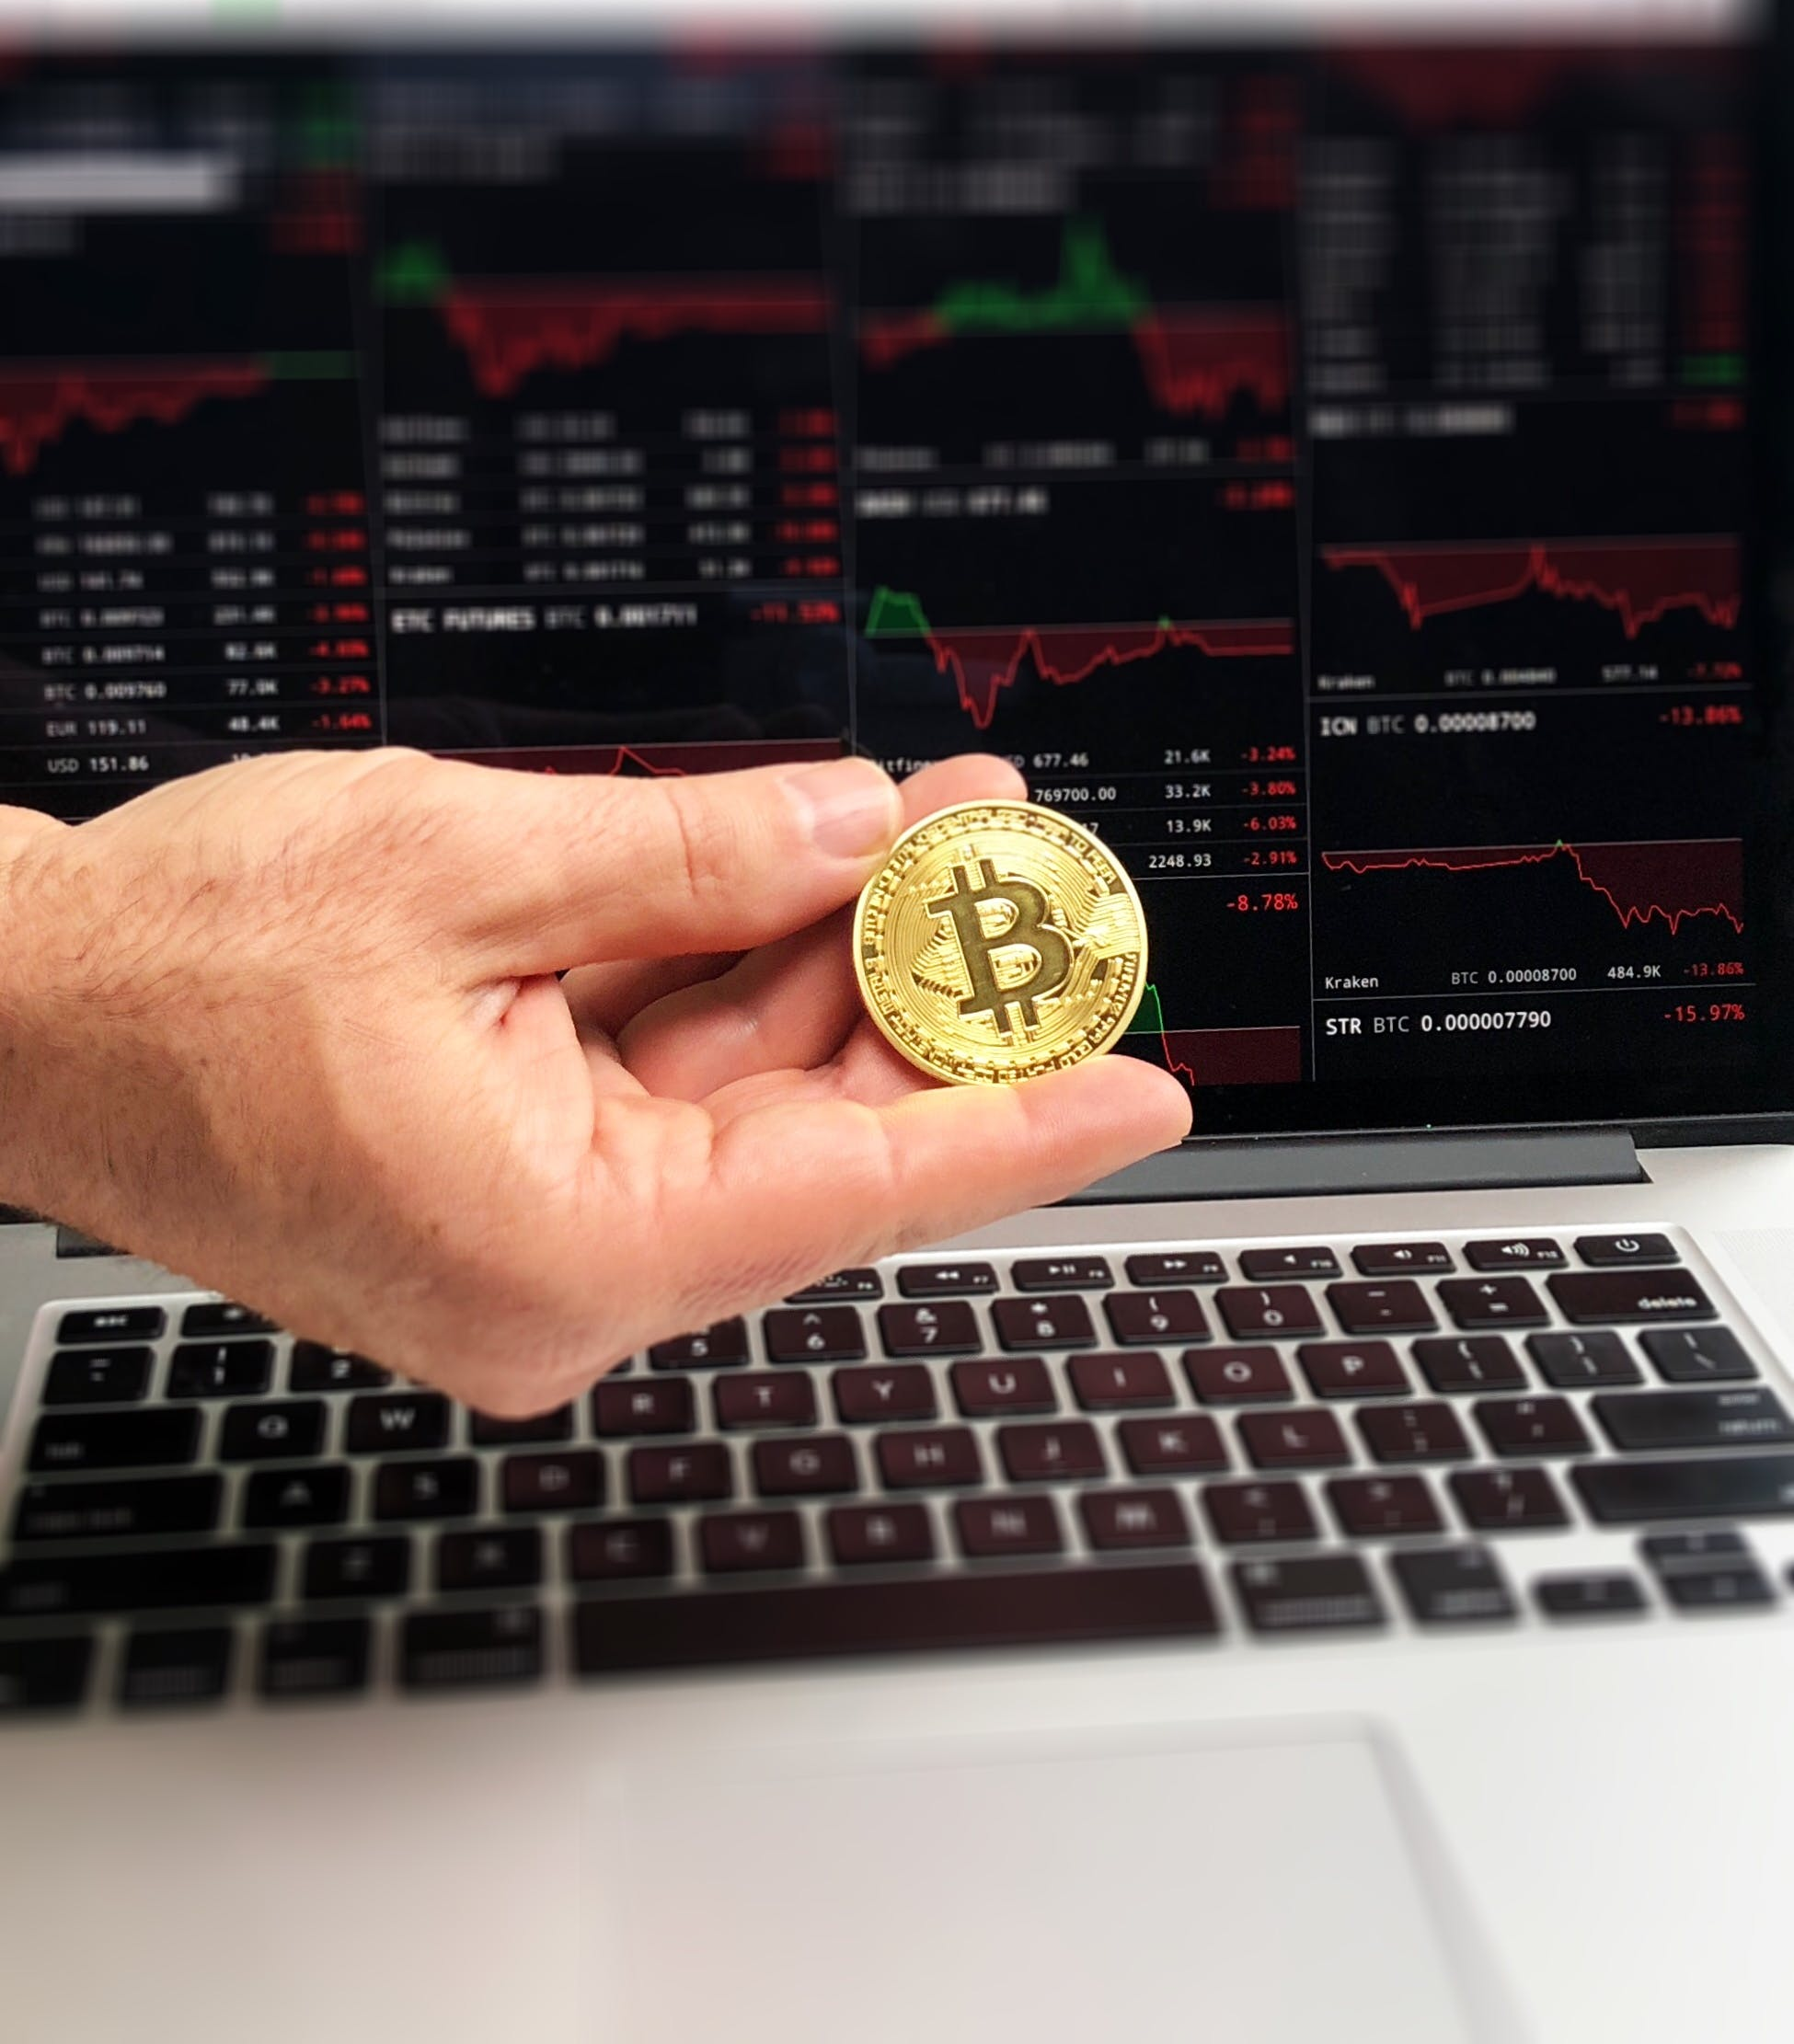 Free stock photo of Fingers holding bitcoin